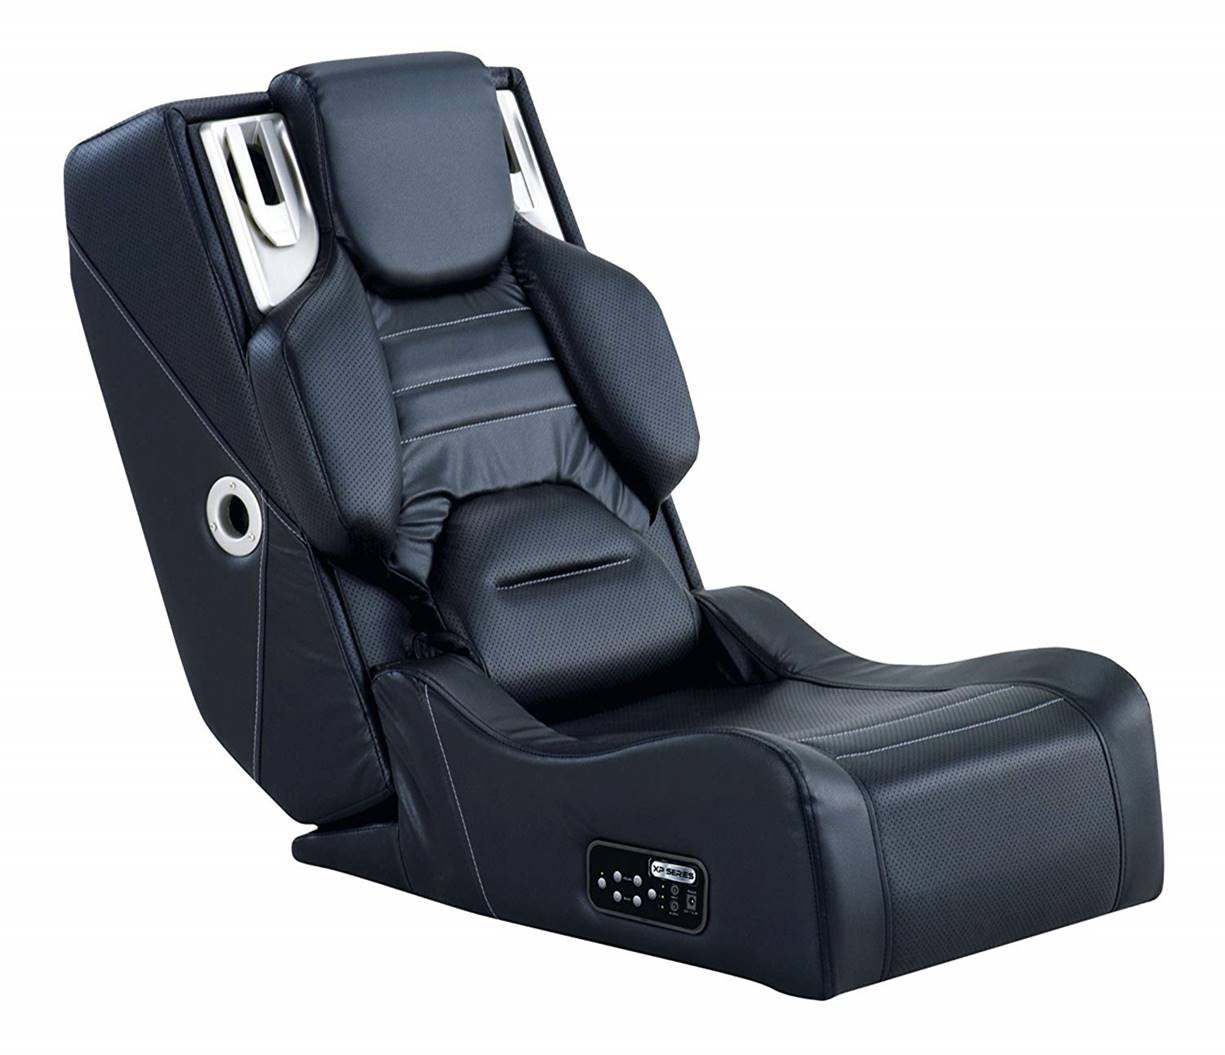 Cohesion XP 11.2 Gaming Chair with Speakers